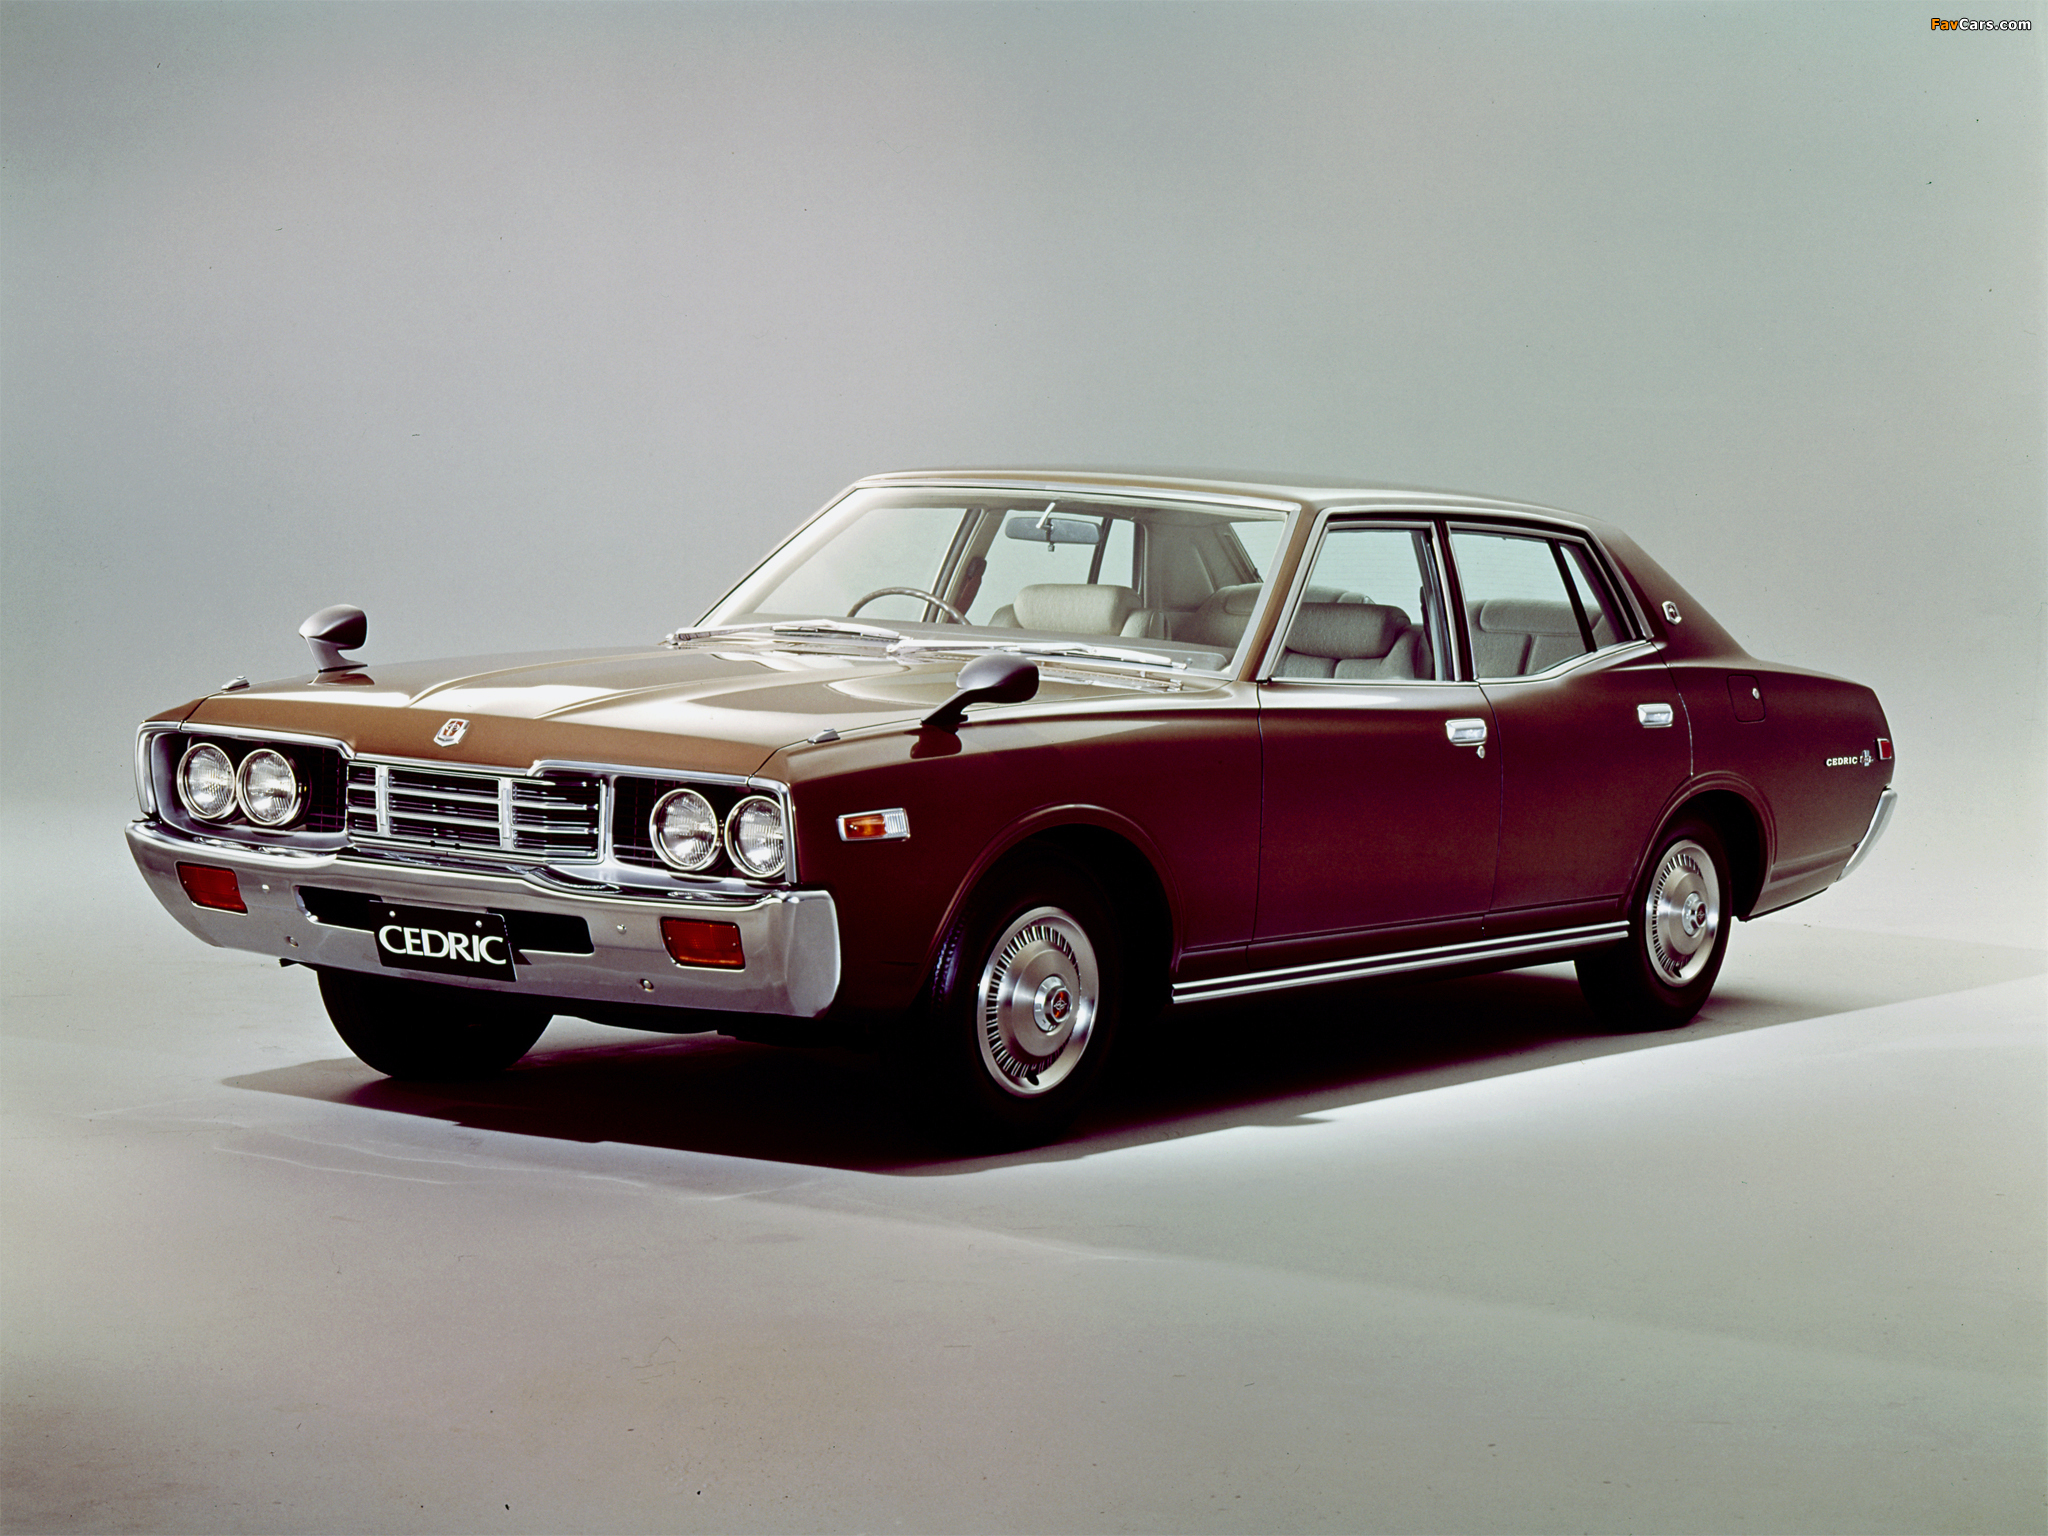 Nissan Cedric Sedan 330 1975 79 Wallpapers 2048x1536